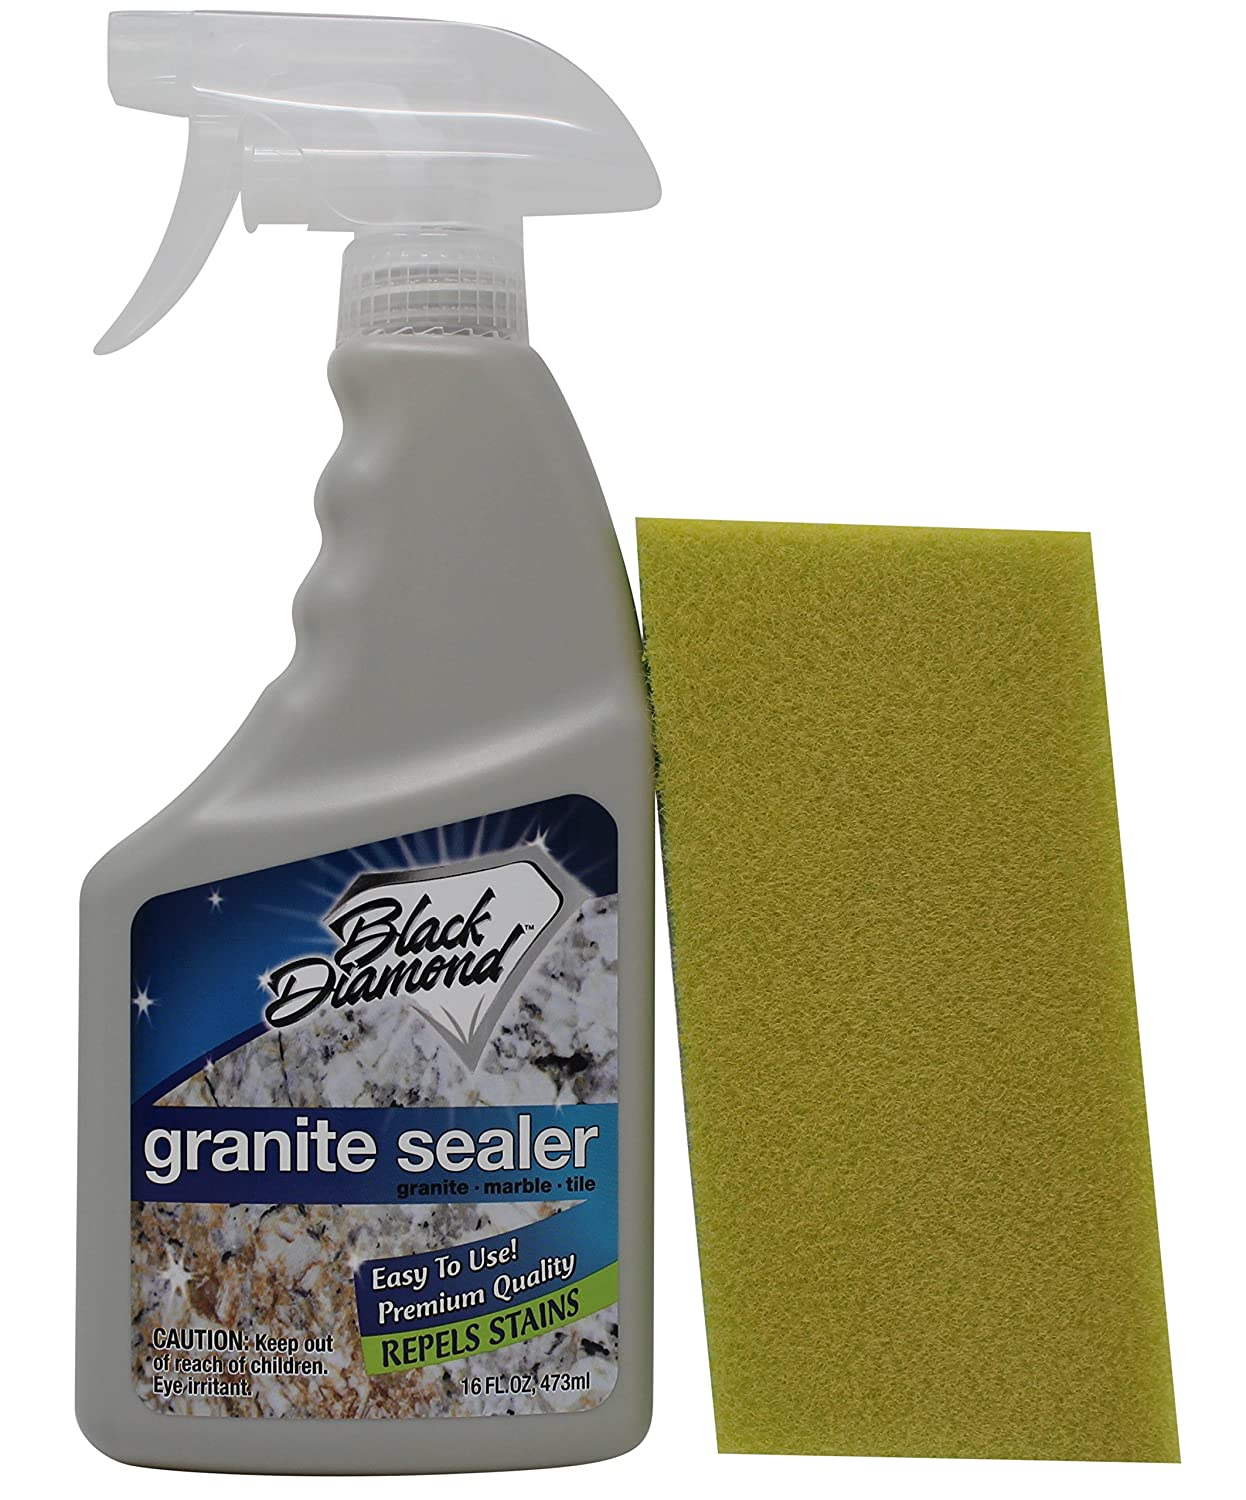 Granite Sealer: Seals and Protects, Granite, Marble, Travertine, Limestone and Concrete Counter Tops. Works Great On Grout, Fireplaces and Patios. 1-Pint/1-Applicator Pad